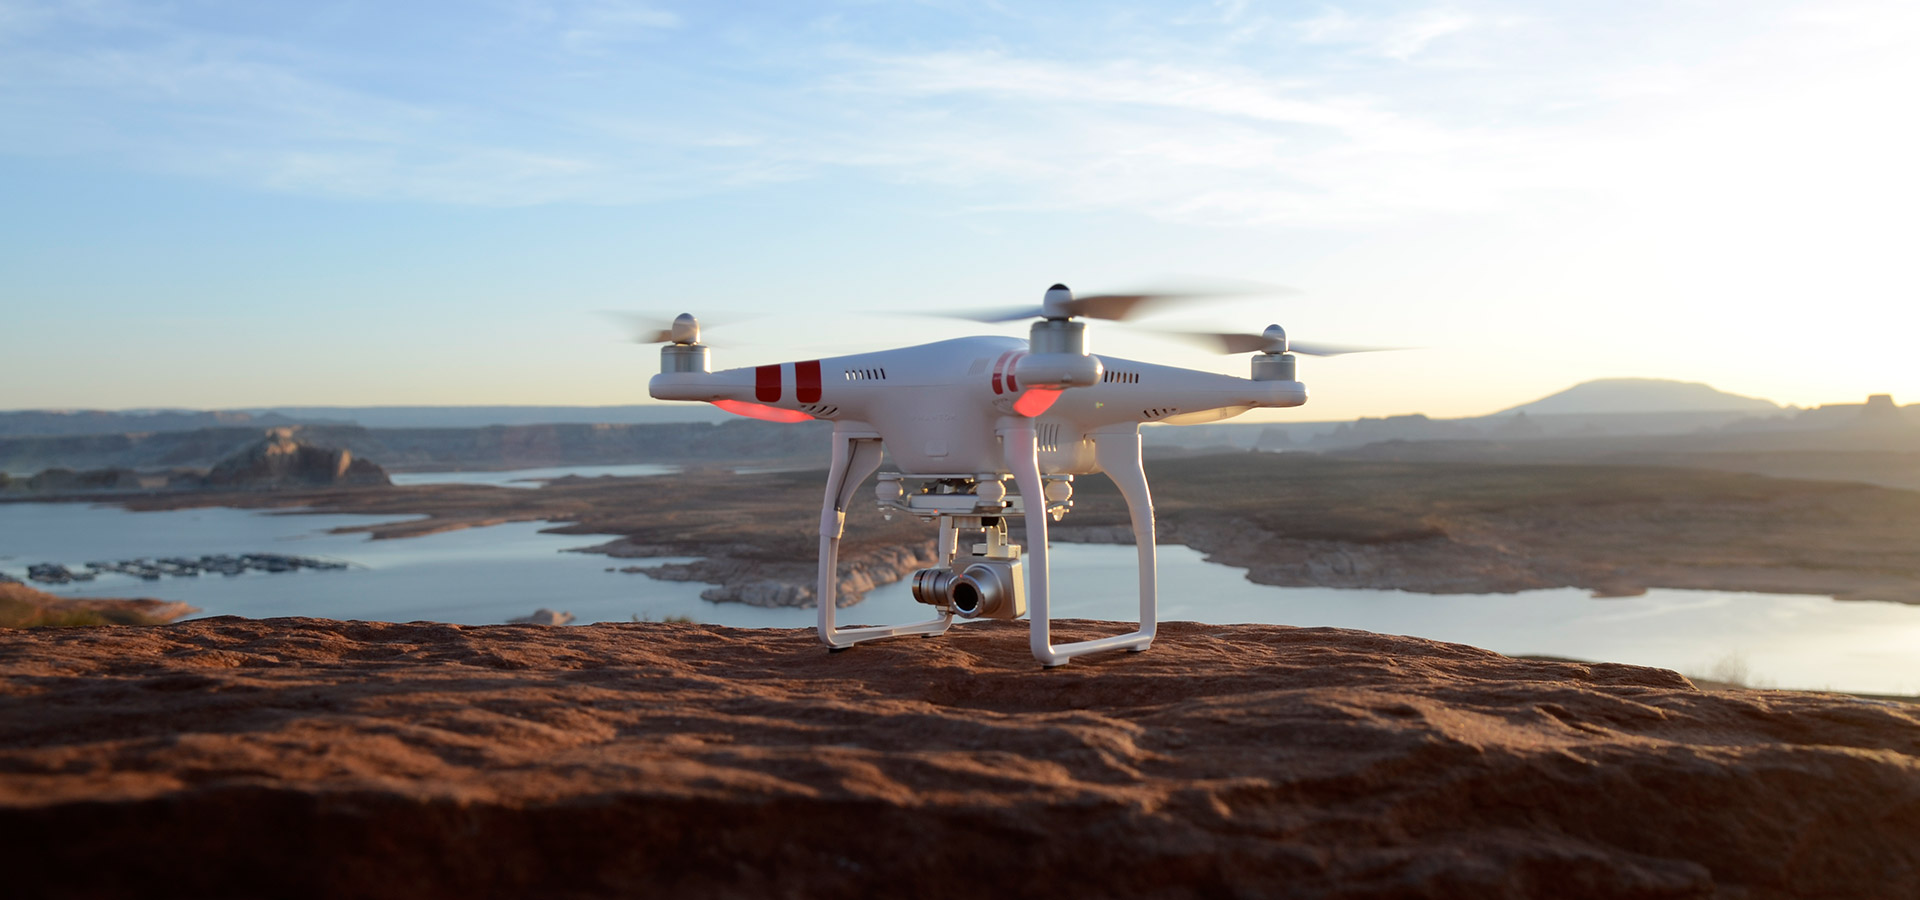 Unmanned Aerial Systems (UAS) represent a rapidly developing   multibillion-dollar industry.